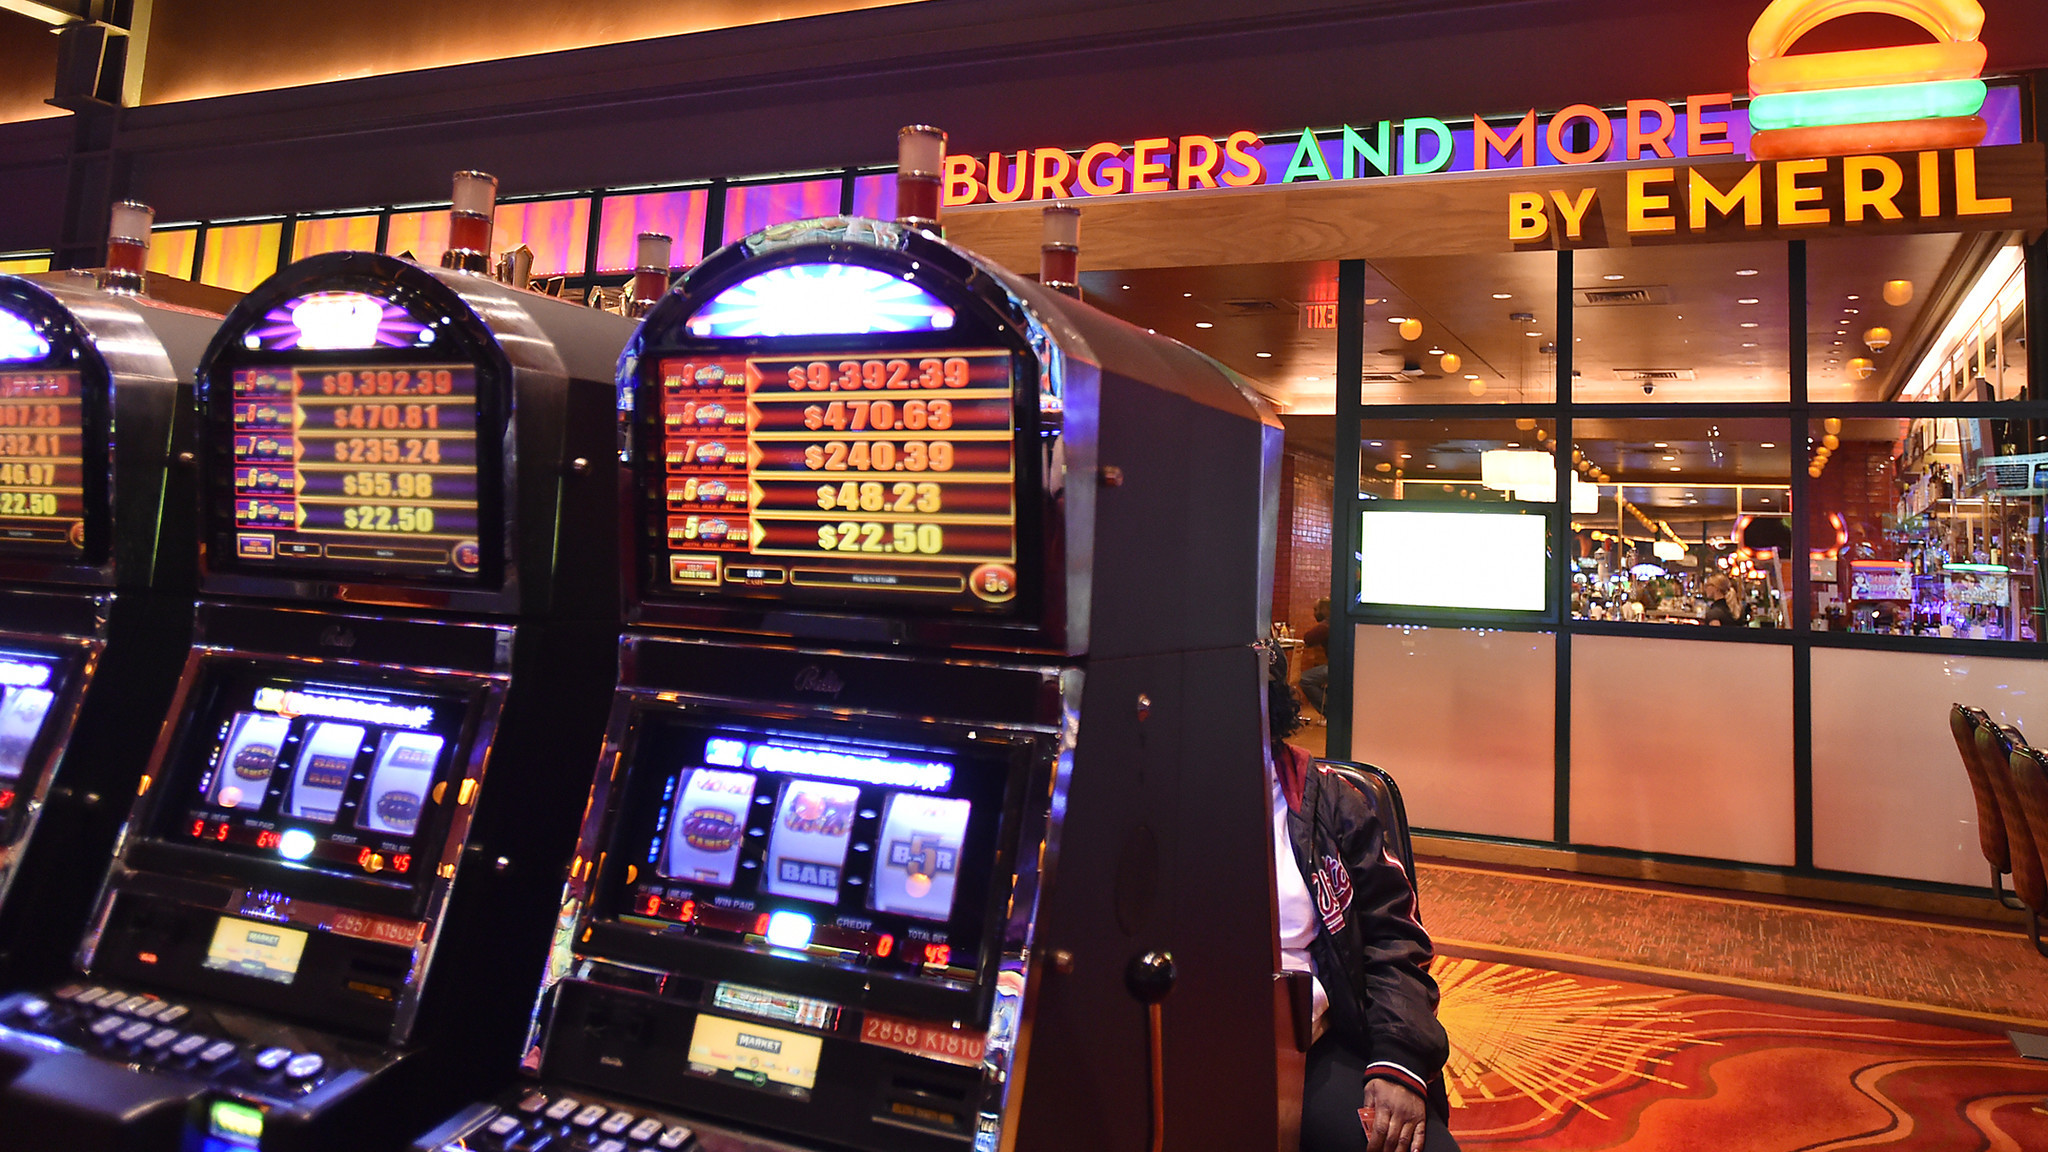 Sands casino in bethlehem will cost statistics on online gambling